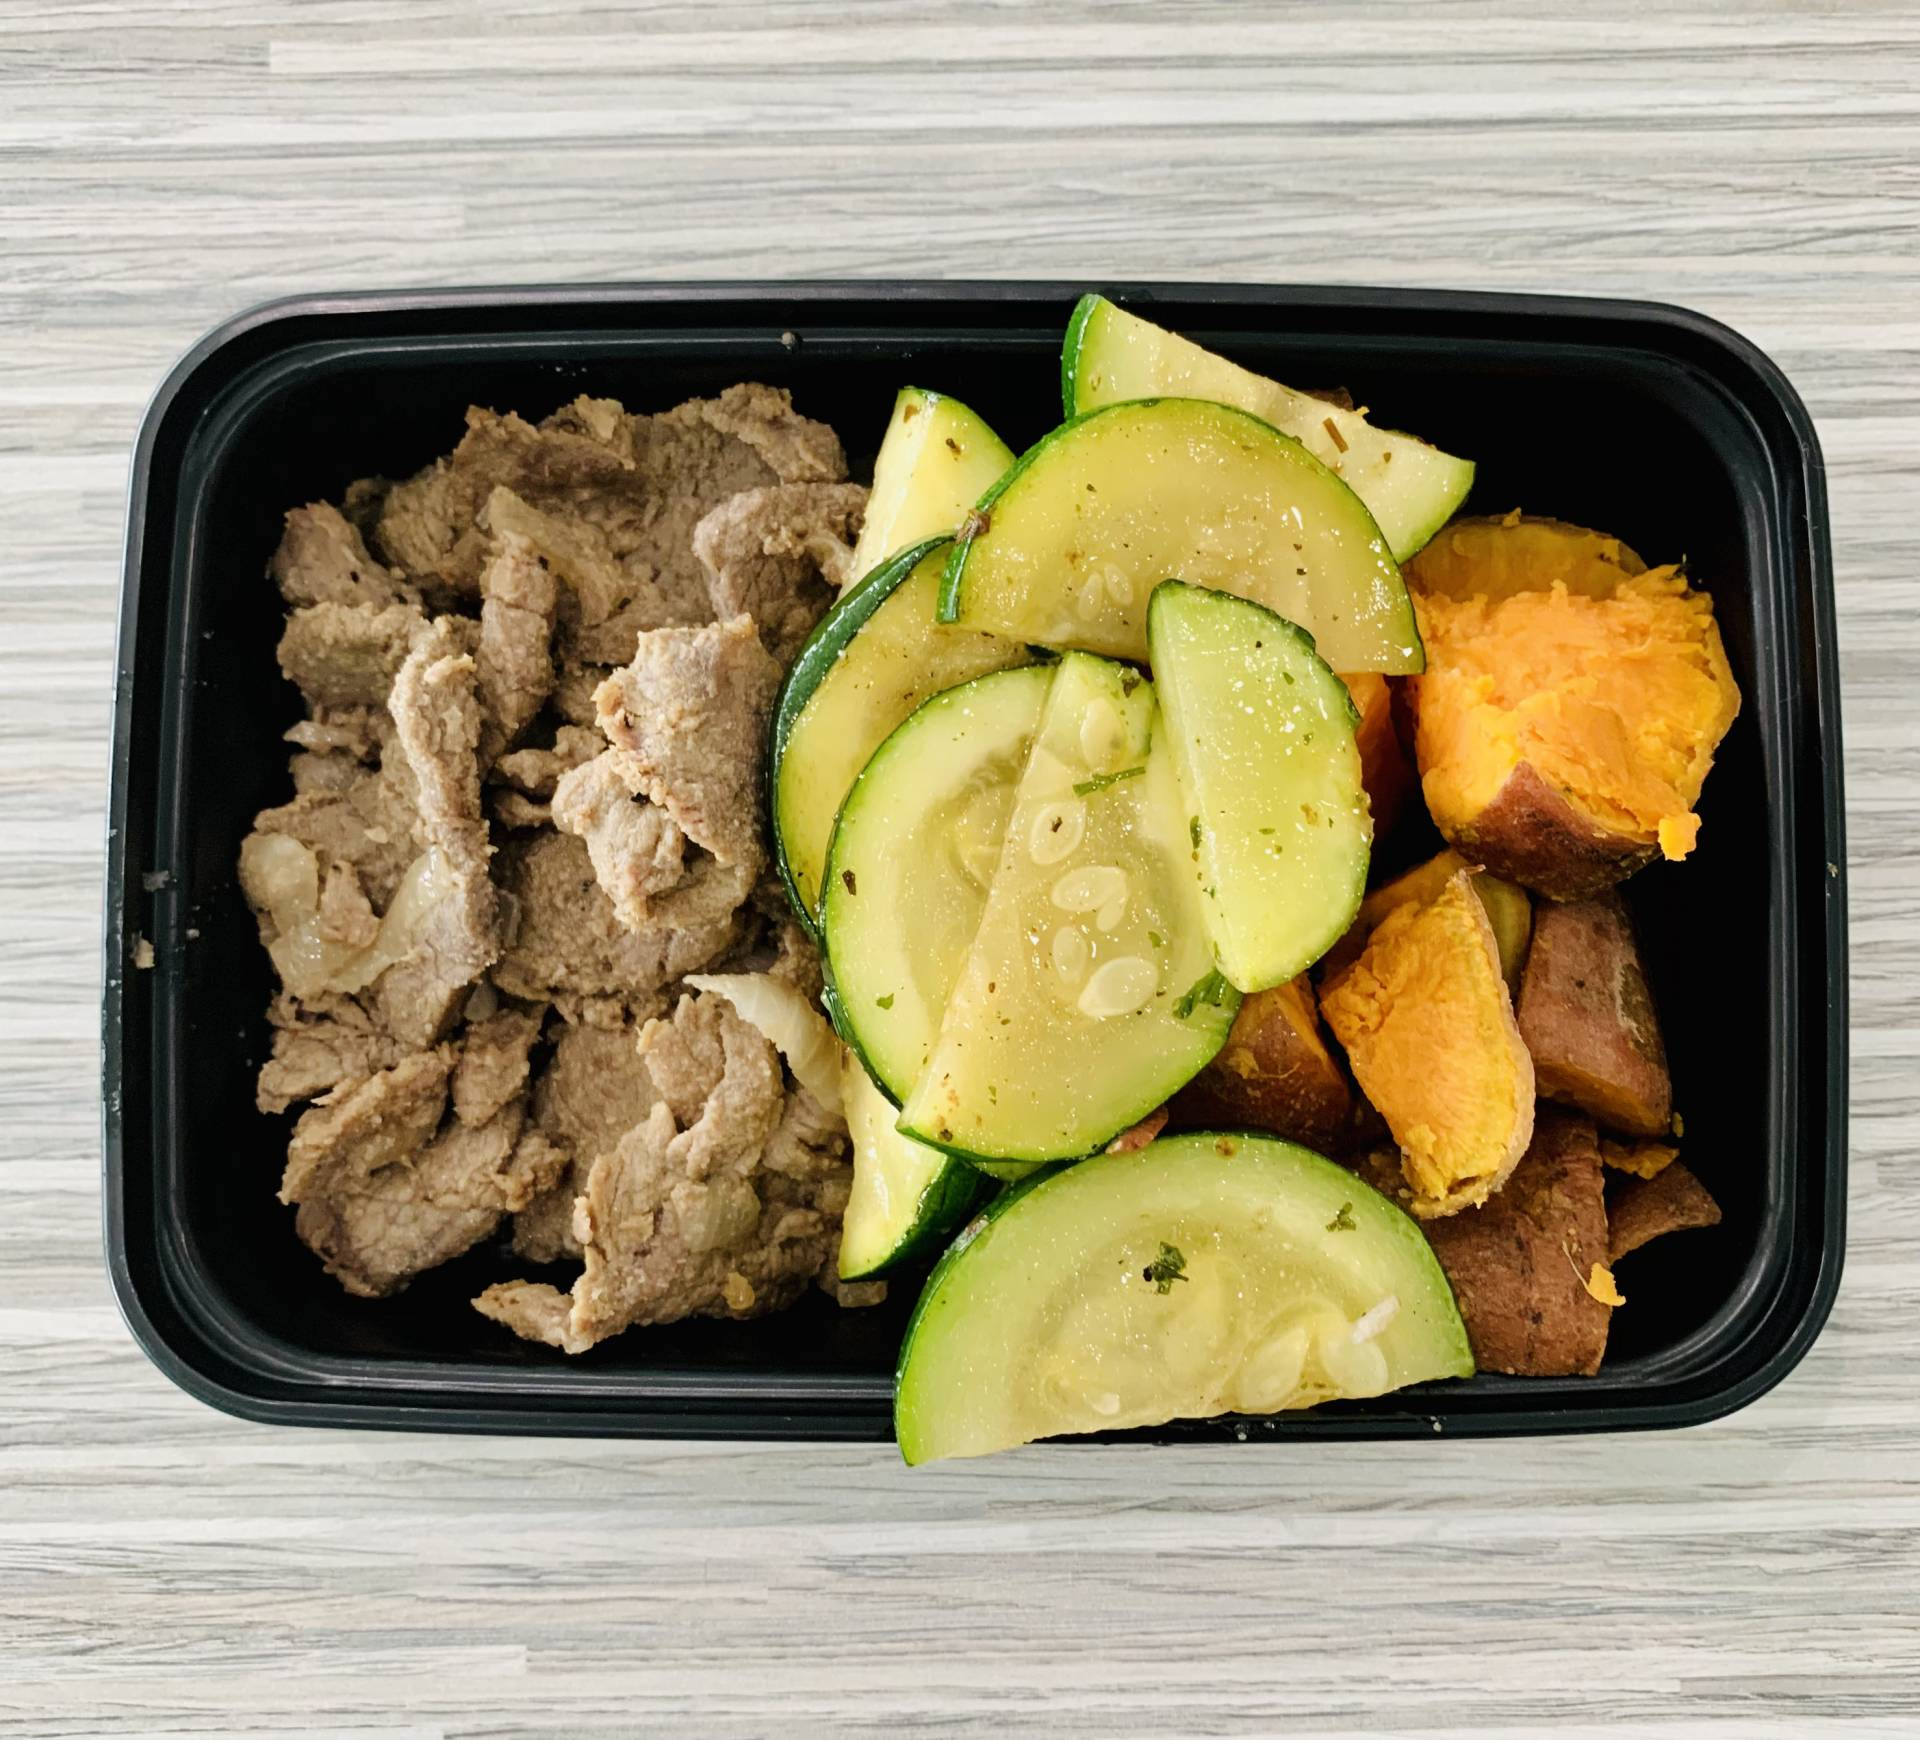 Steak, Sweet Potato, and Zucchini